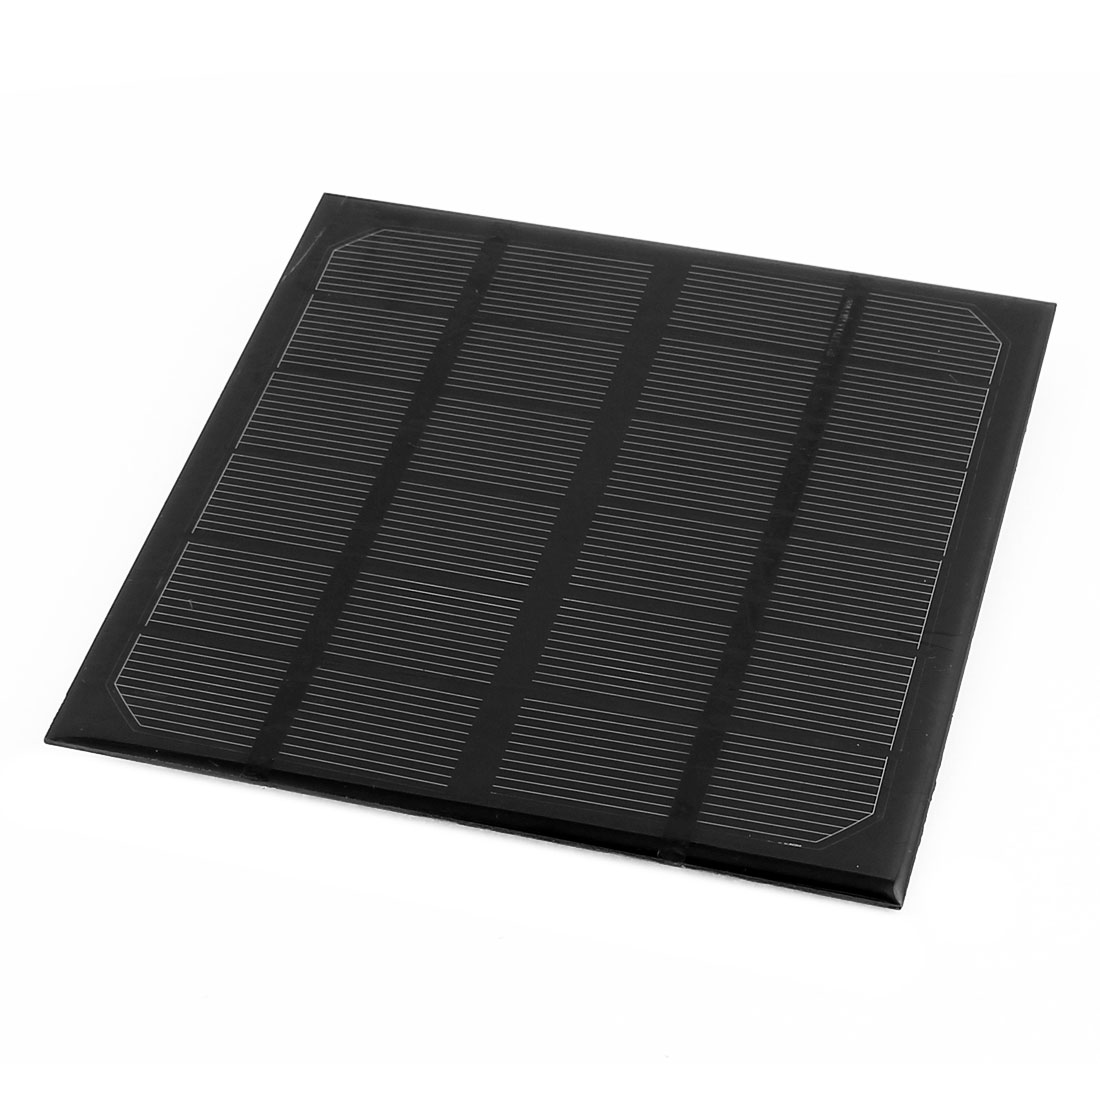 DC 6V 3W USB Energy Saving Solar Cell Panel Module 145x145x3mm for Charger